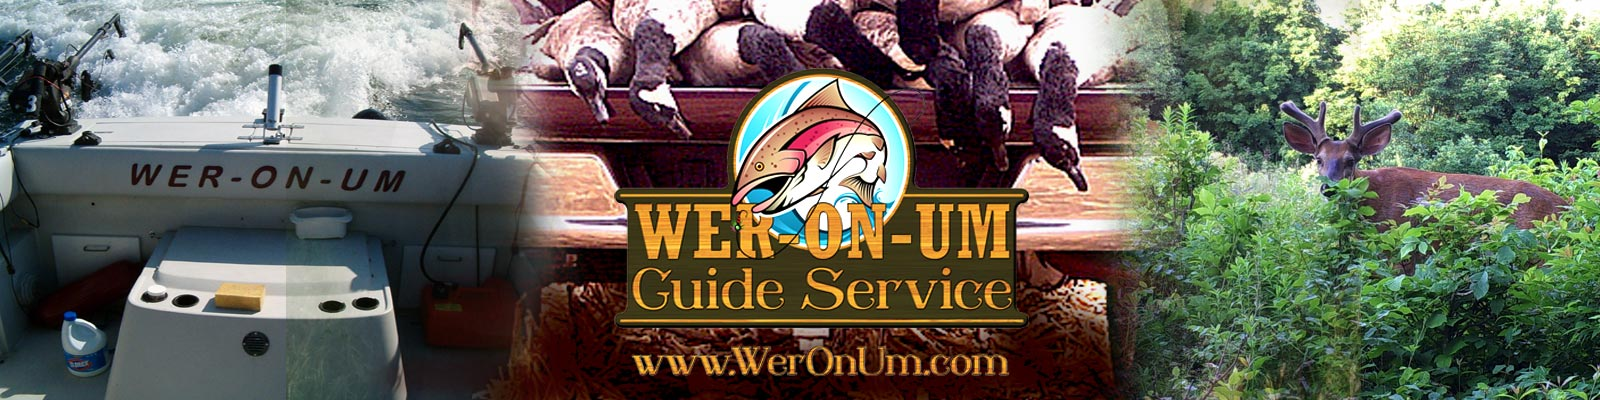 Wer-On-Um Guide Service Banner